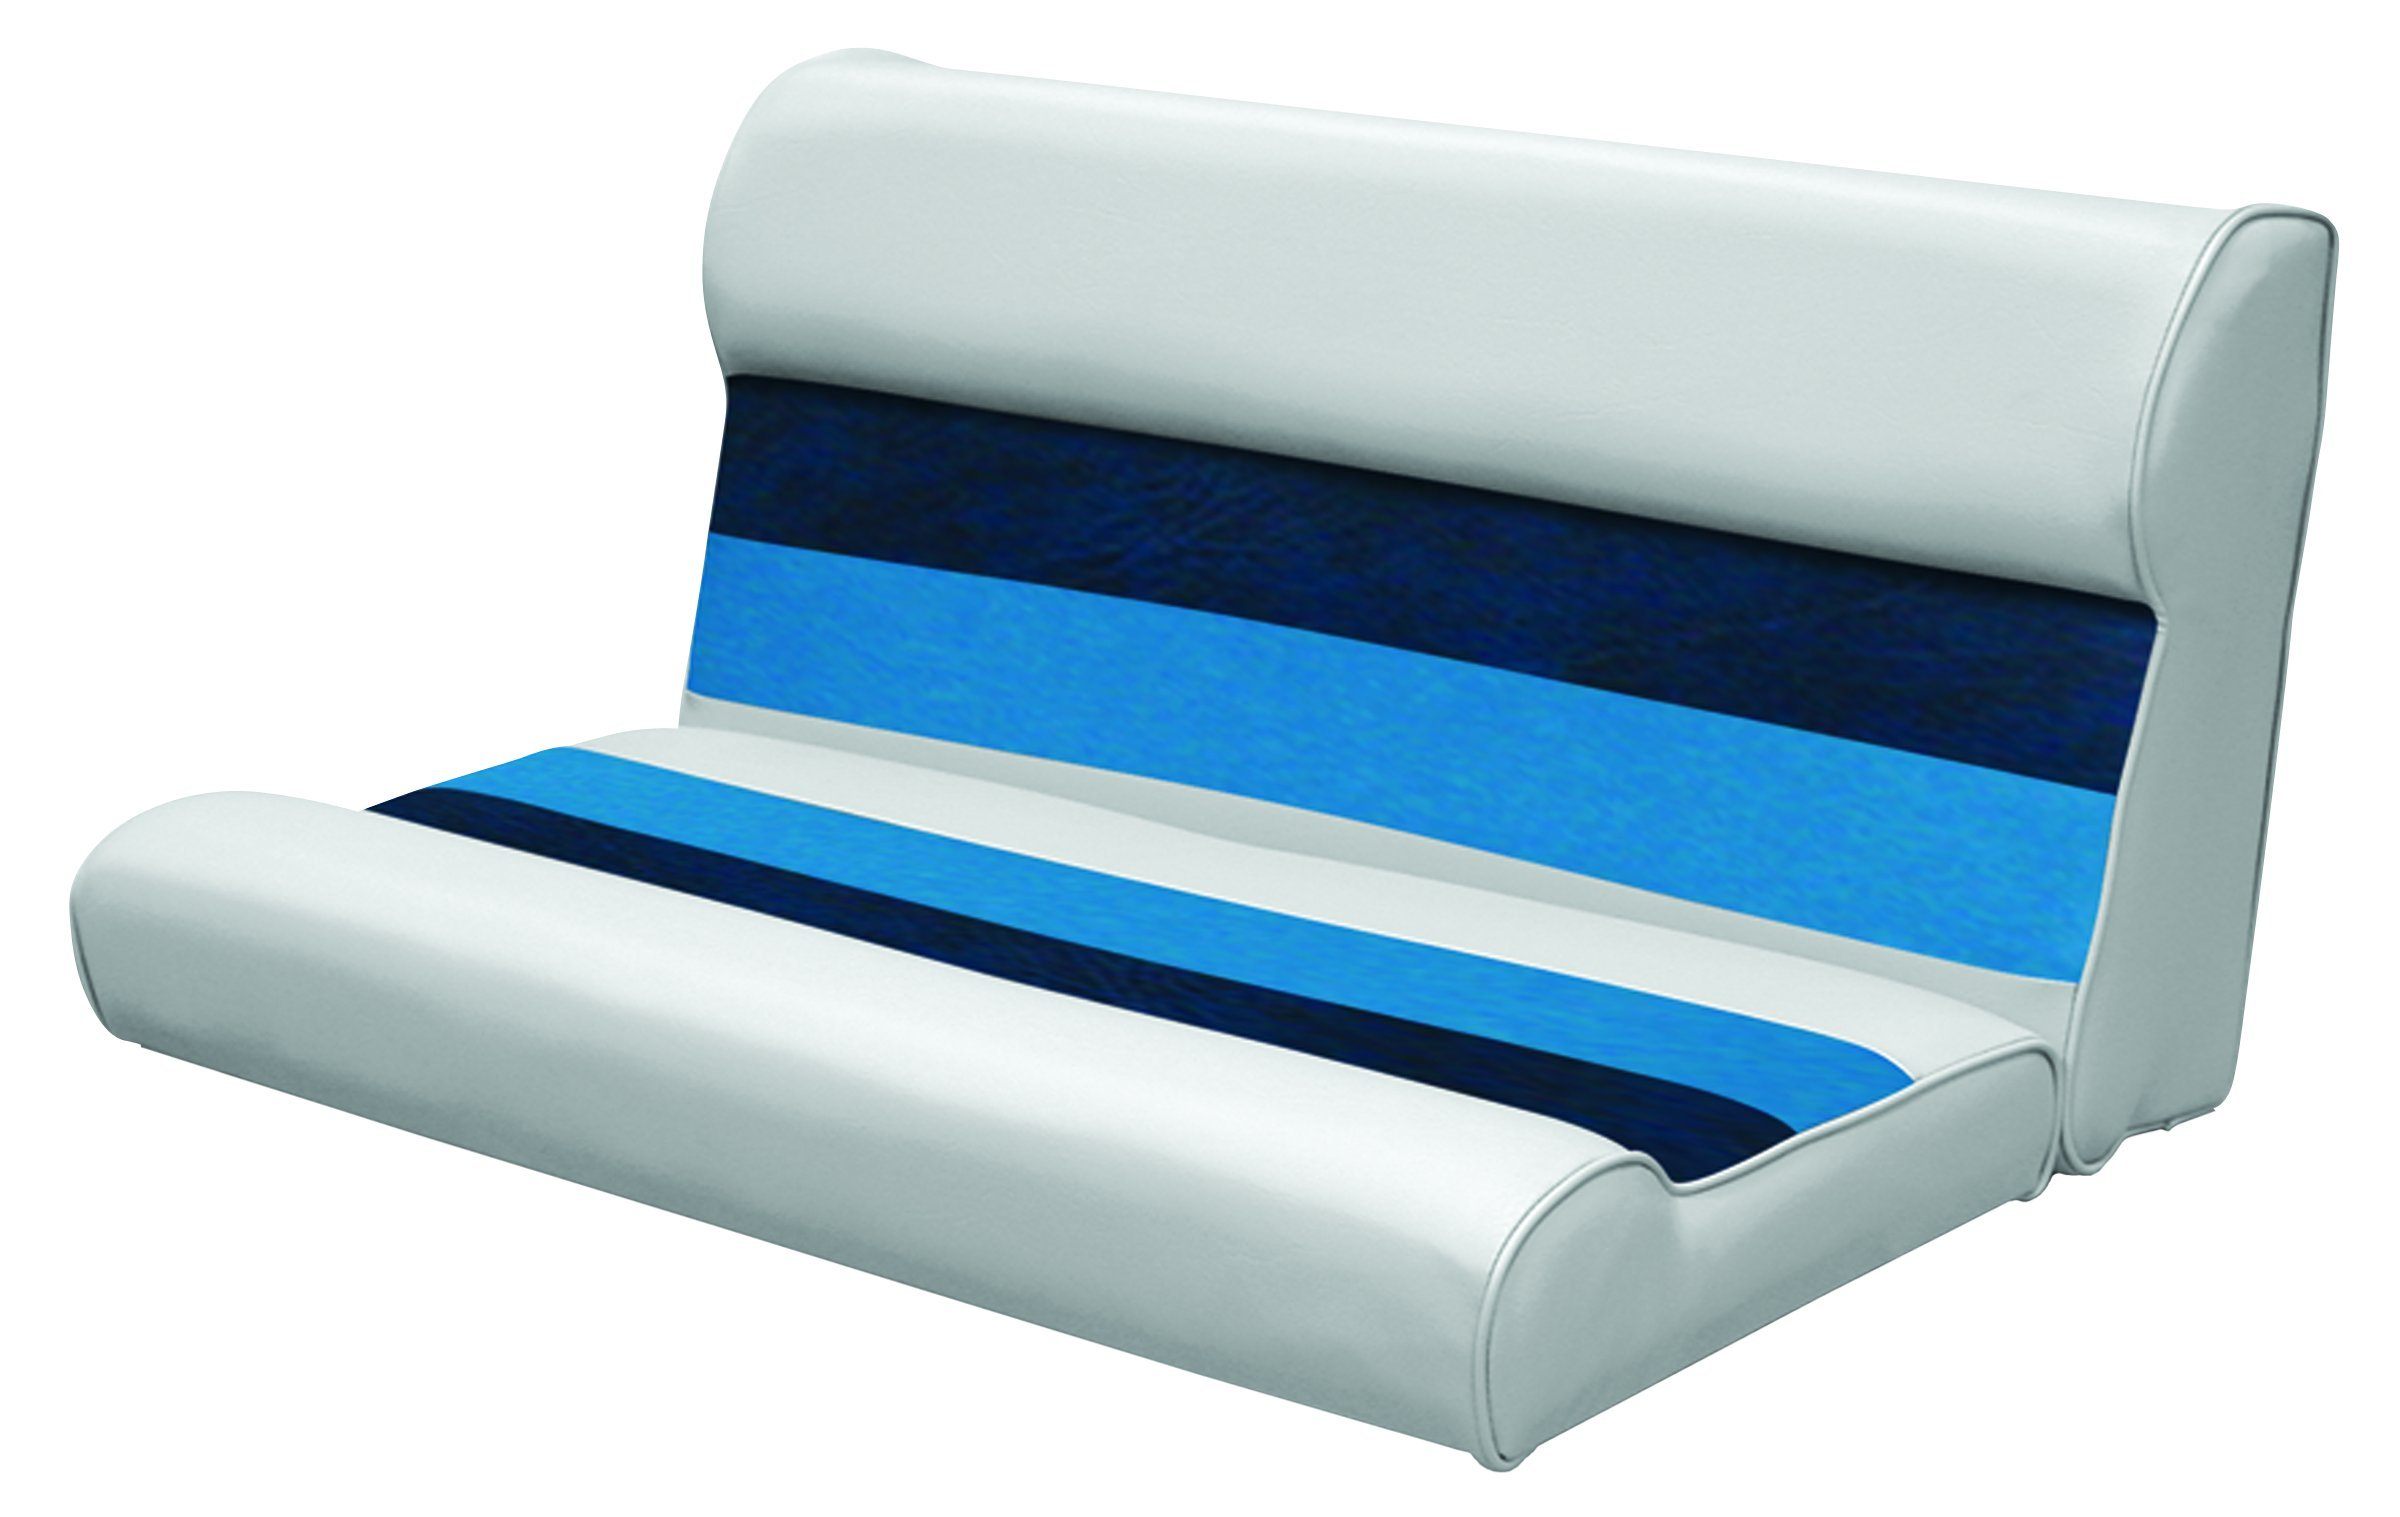 Wise 36-Inch Pontoon Bench Seat Cushion (Base Required to Complete), Gray/Navy/Blue